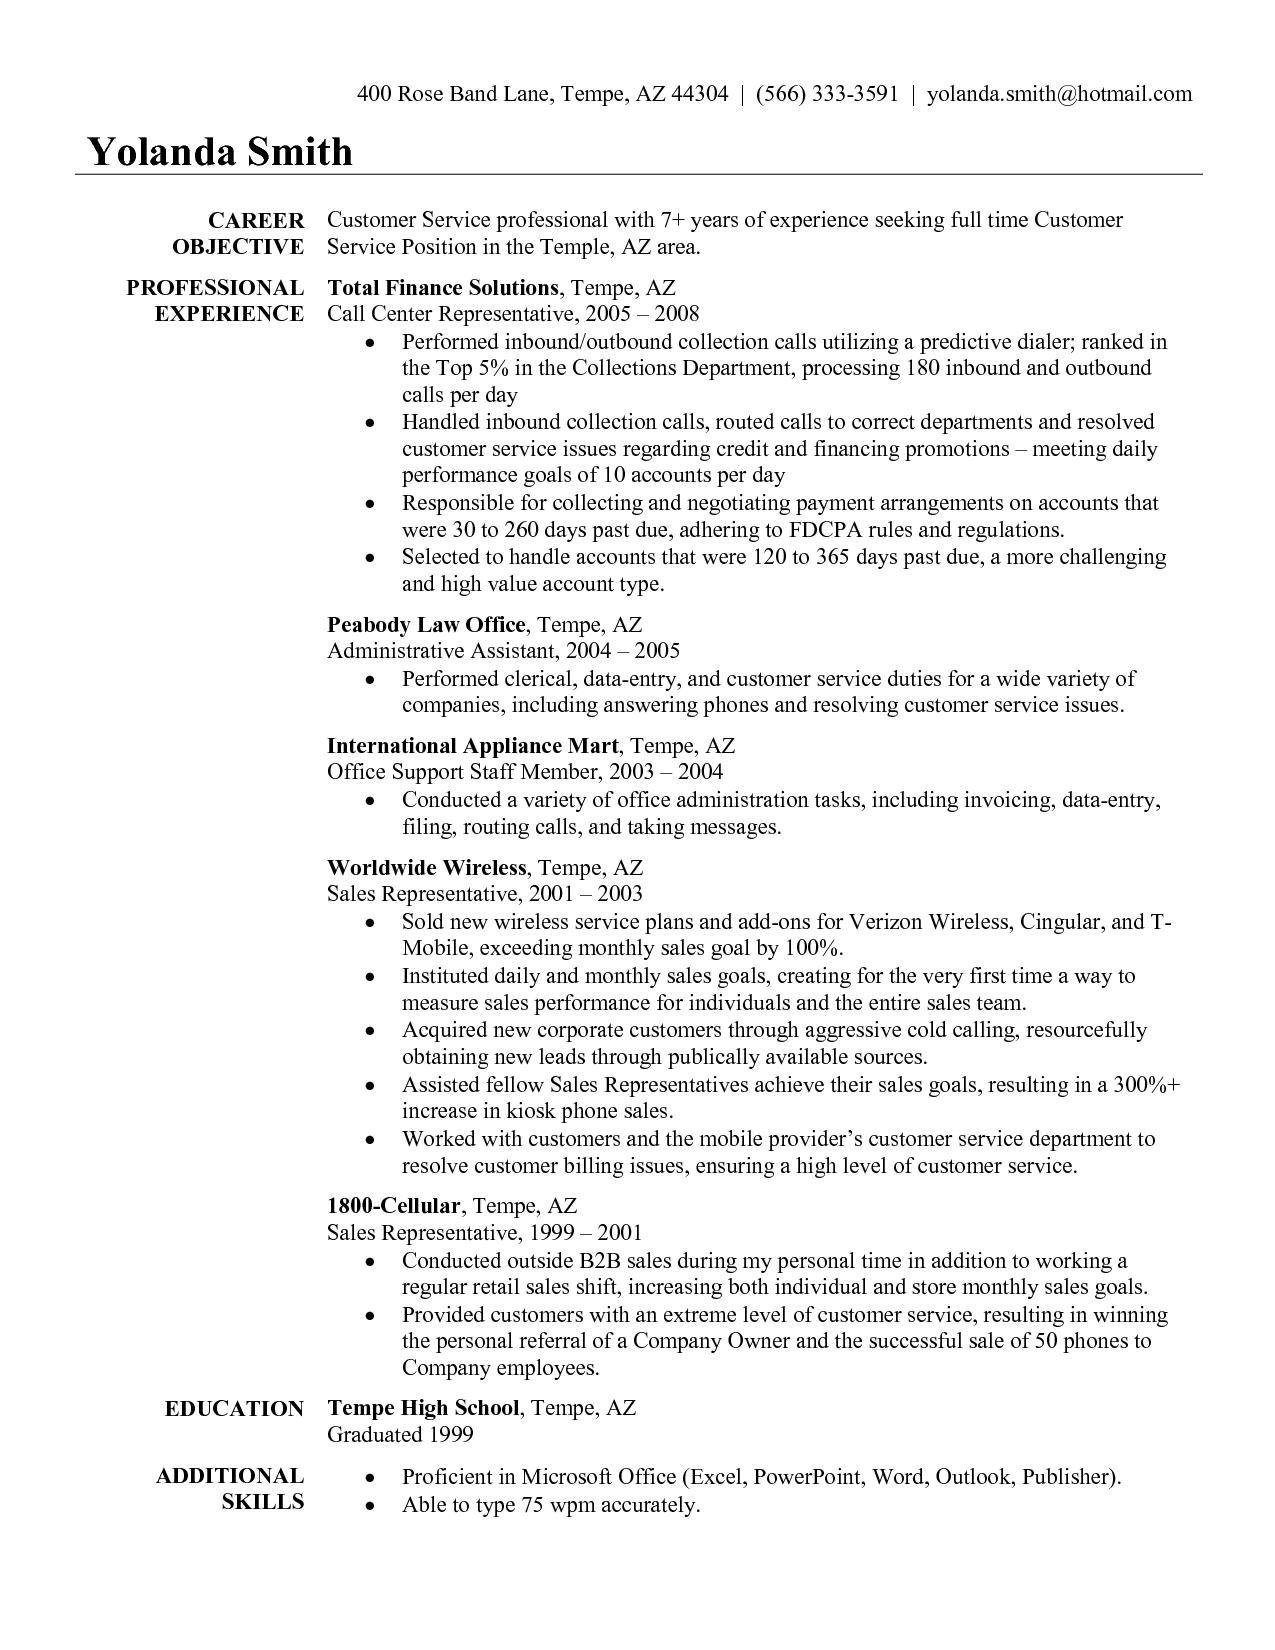 Traffic Customer Resume Examples,,Customer Service Resume Examples